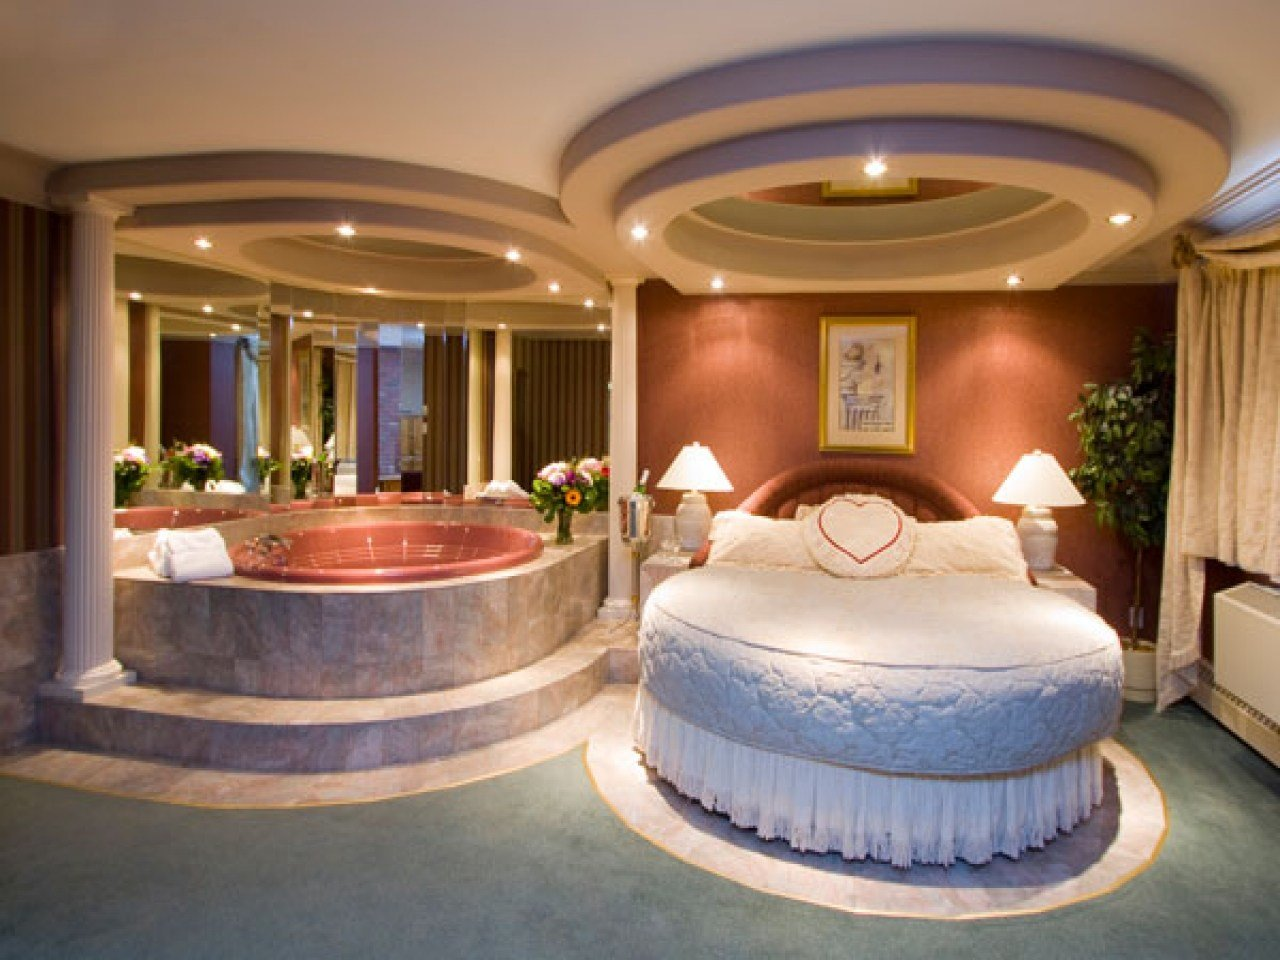 Best Hotel Bedroom Decor Romantic Bedroom With Hot Tub With Pictures